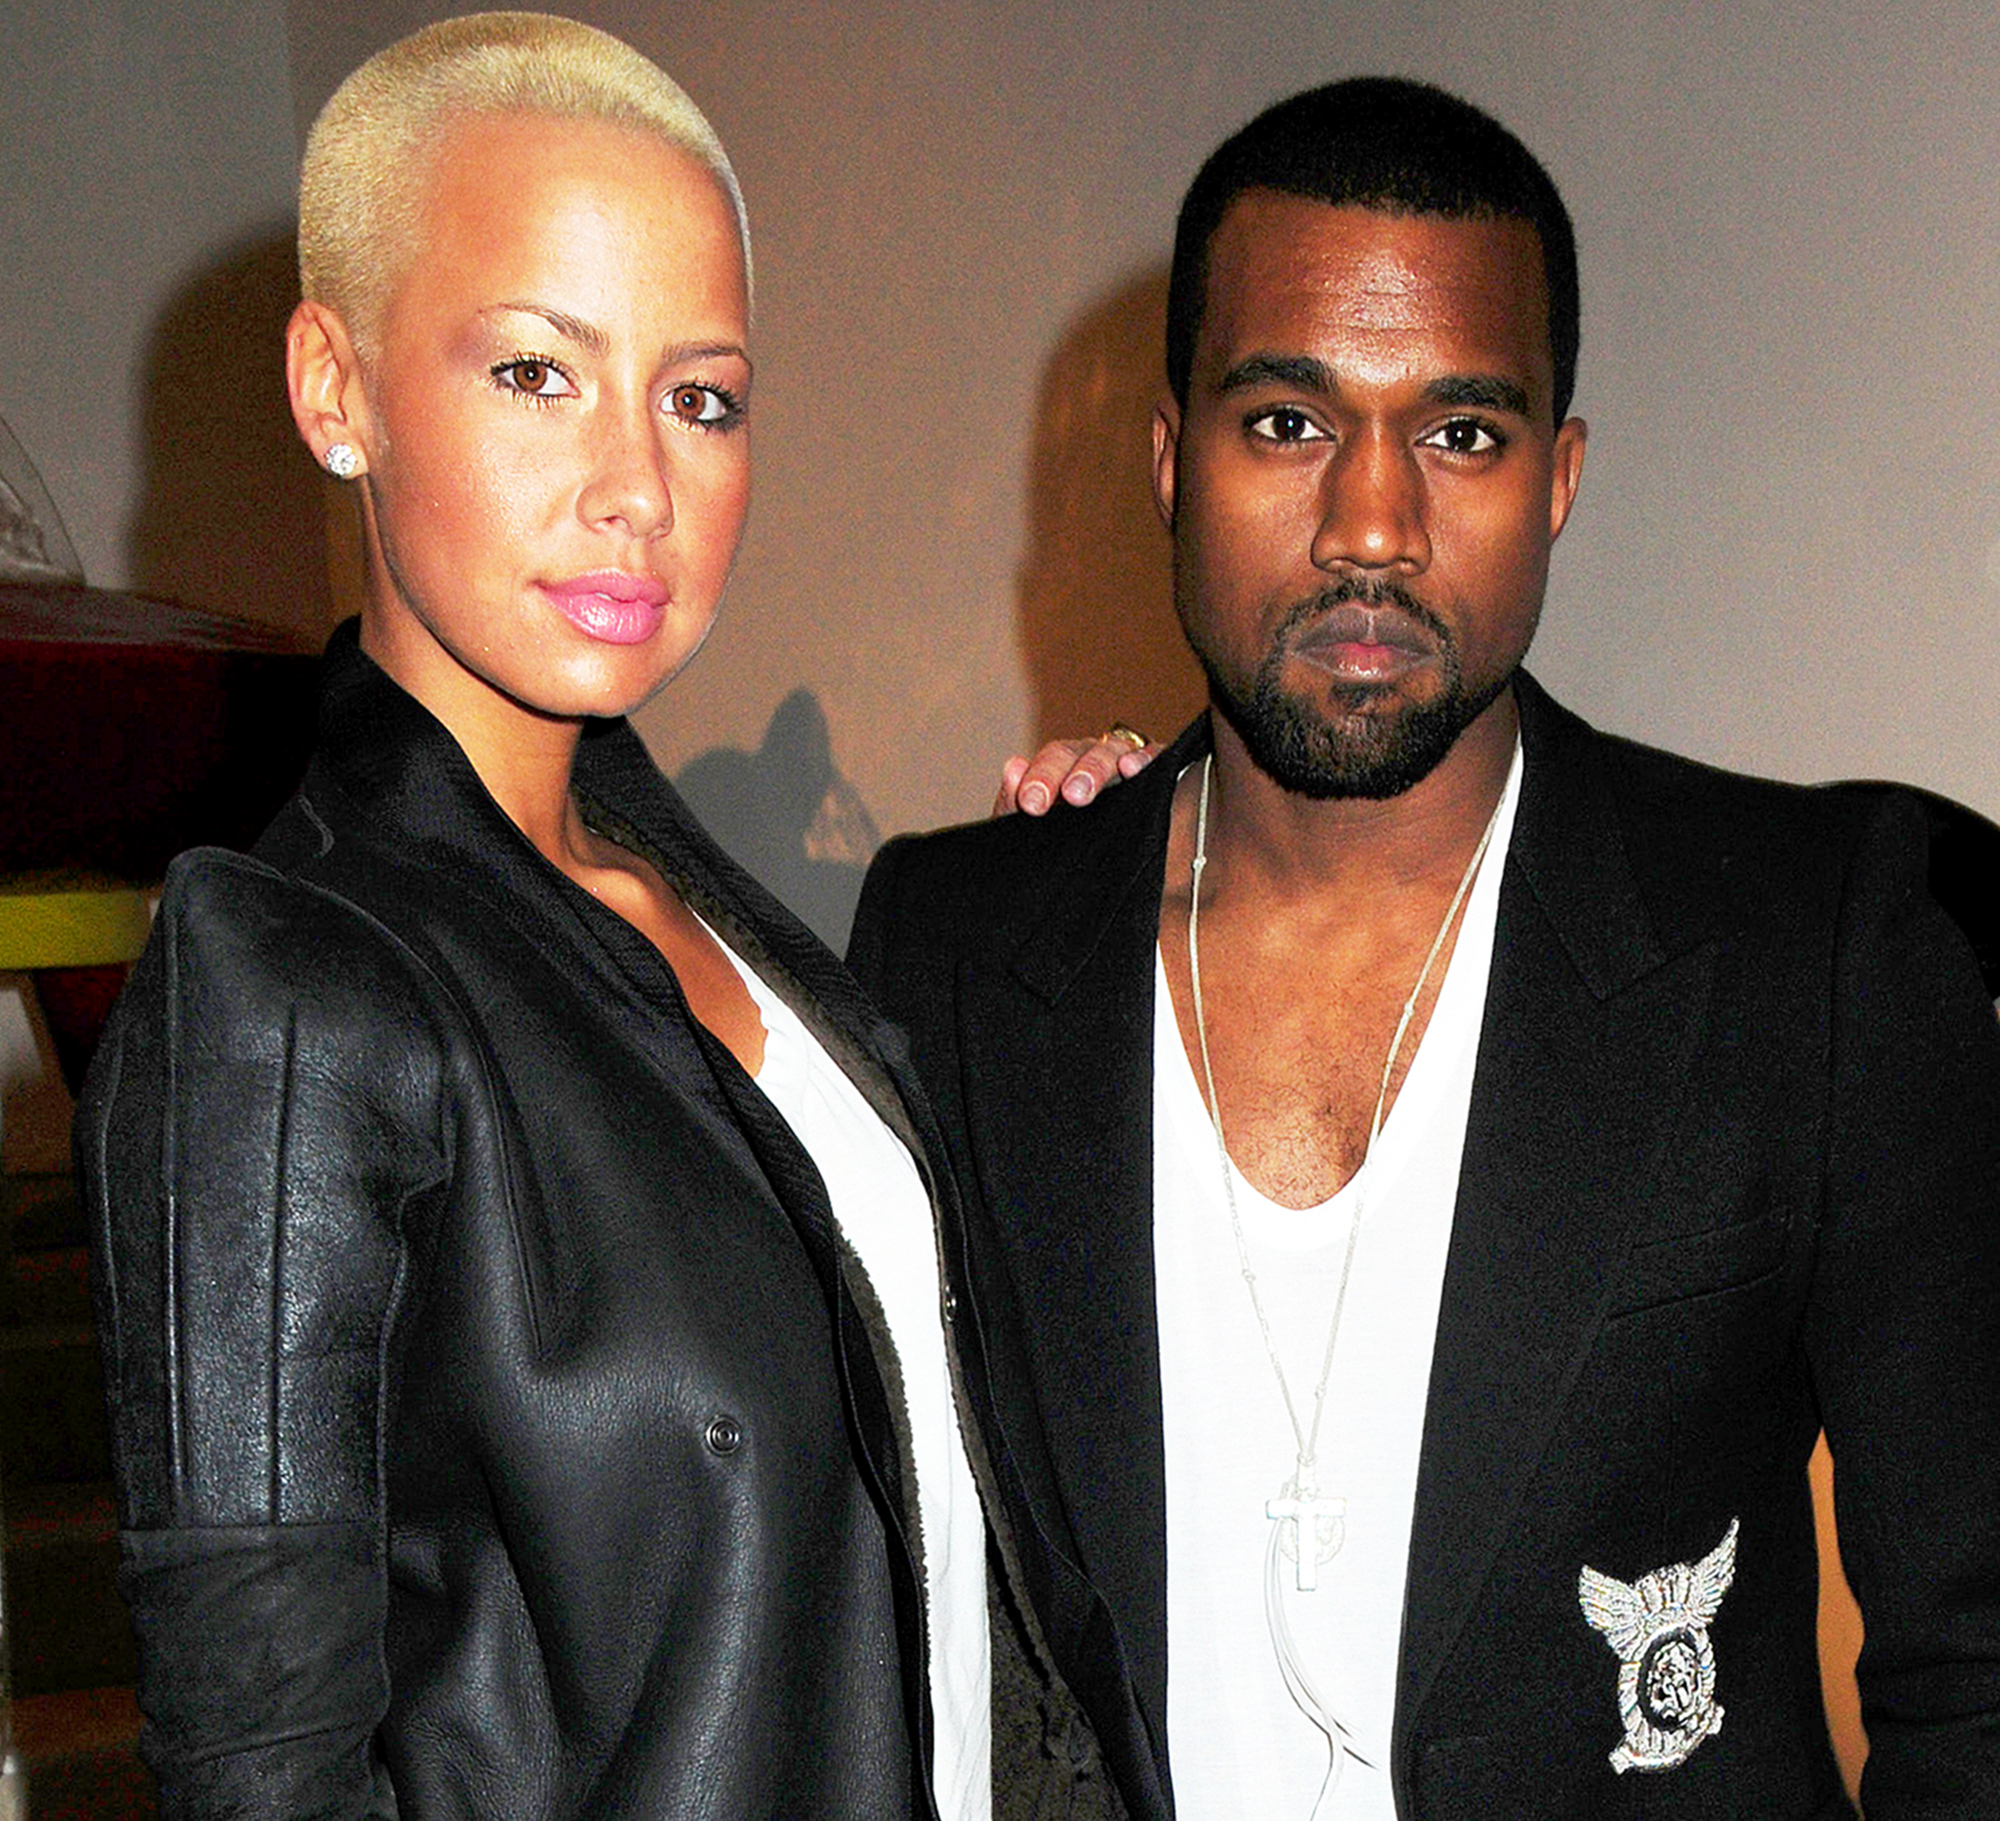 Rose kanye and amber pics west